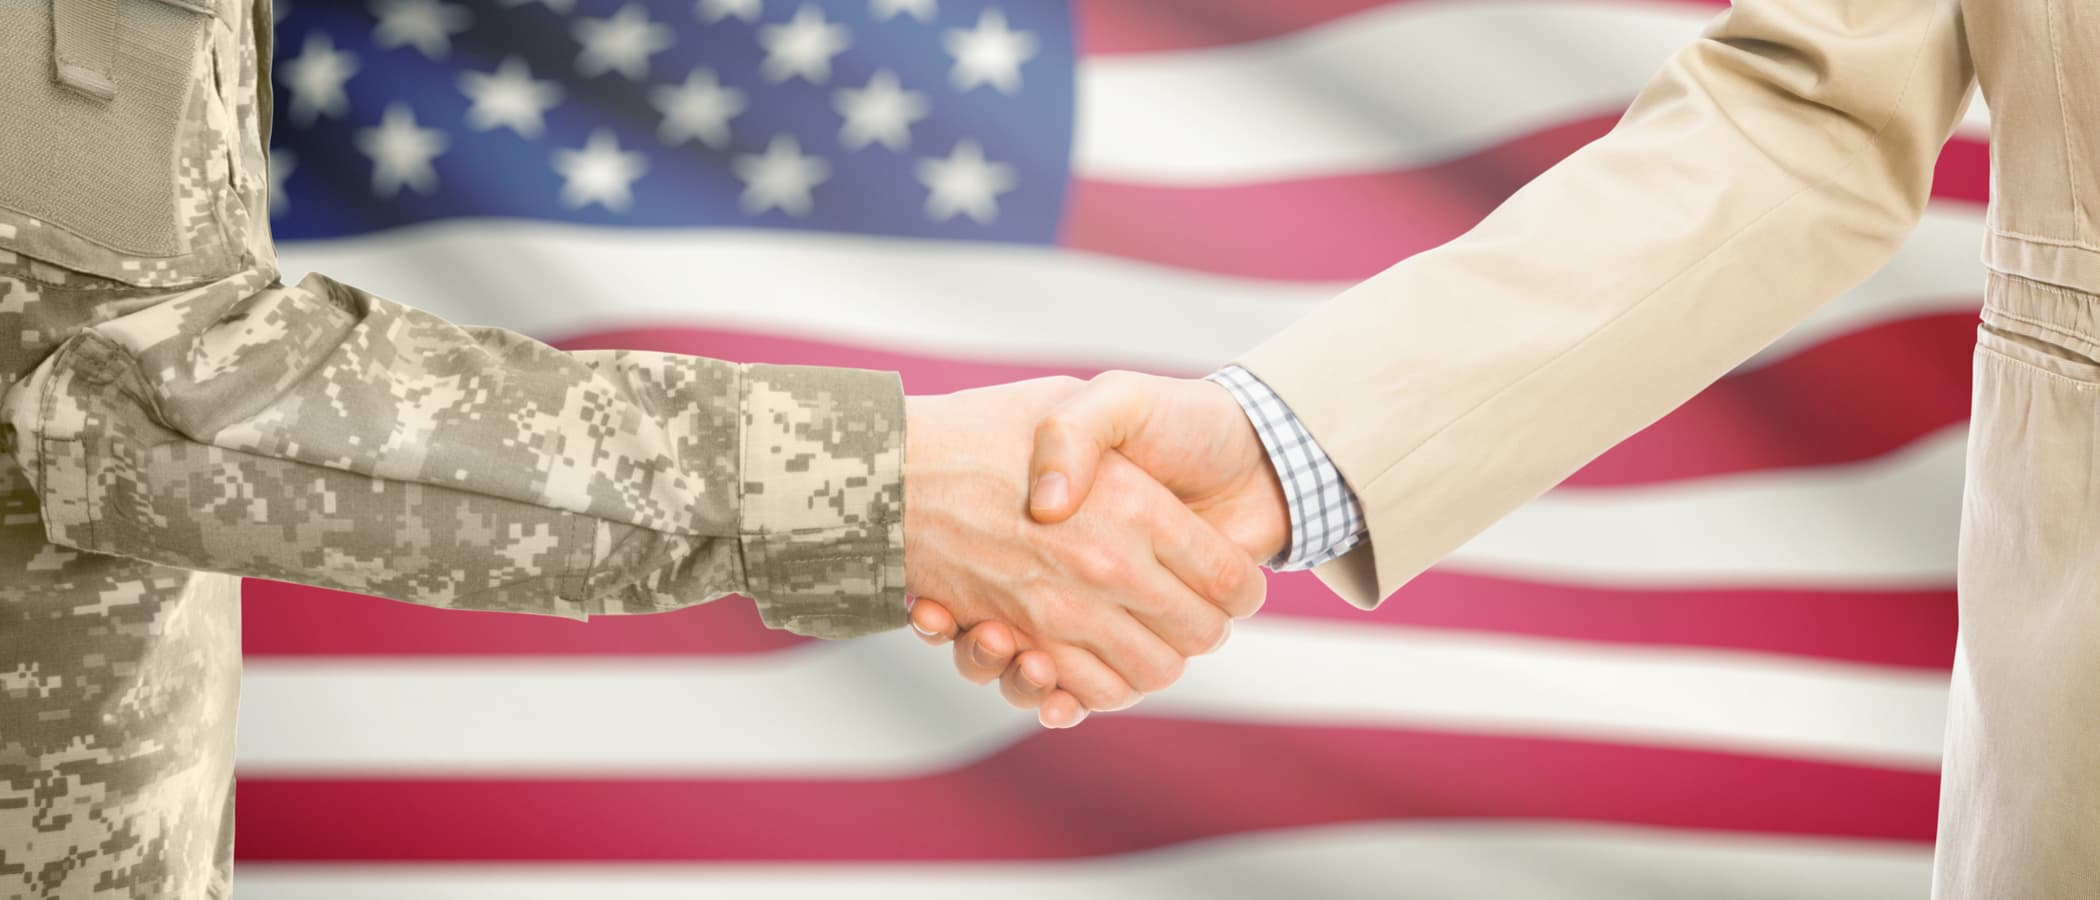 Want to Hire Veterans? Support Your Military Community